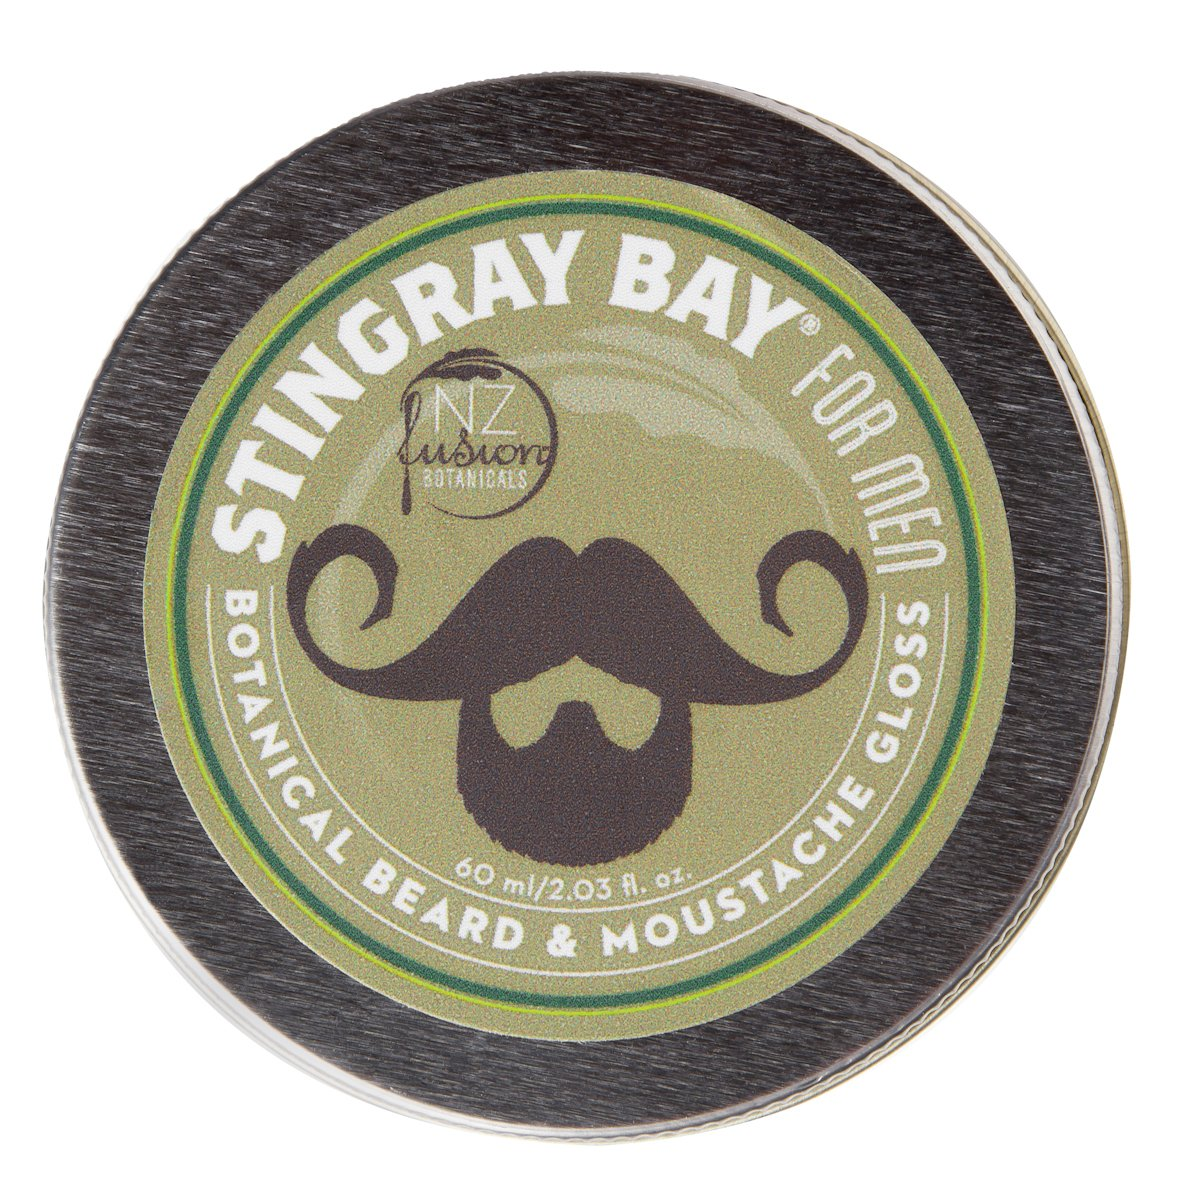 All-natural Botanical Beard and Moustache Gloss and Wax by Stingray Bay by Stingray Bay (Image #1)